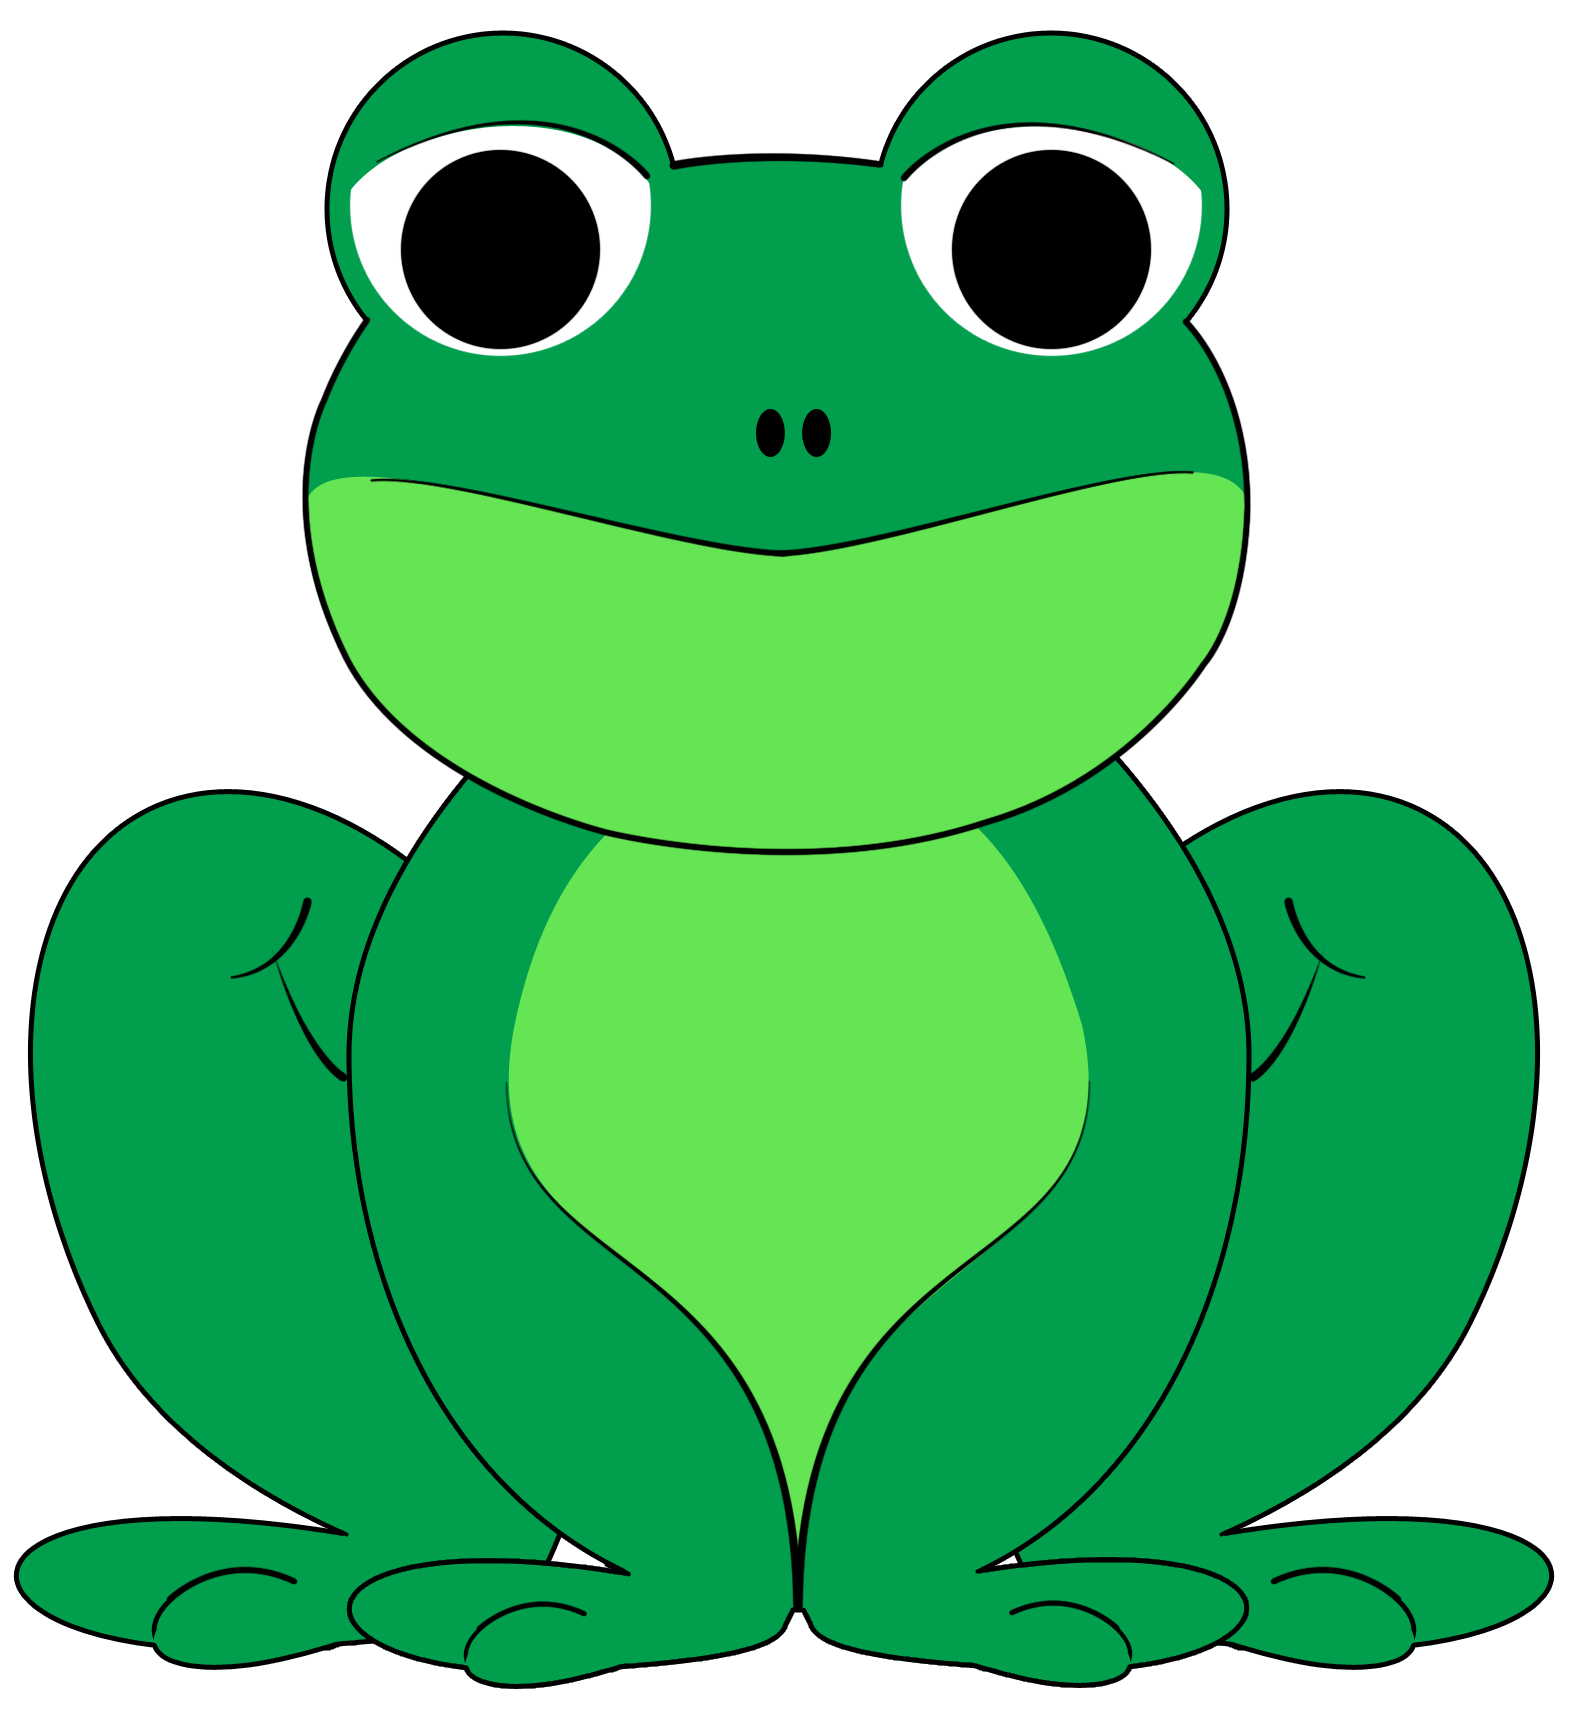 Frog clipart #4, Download drawings